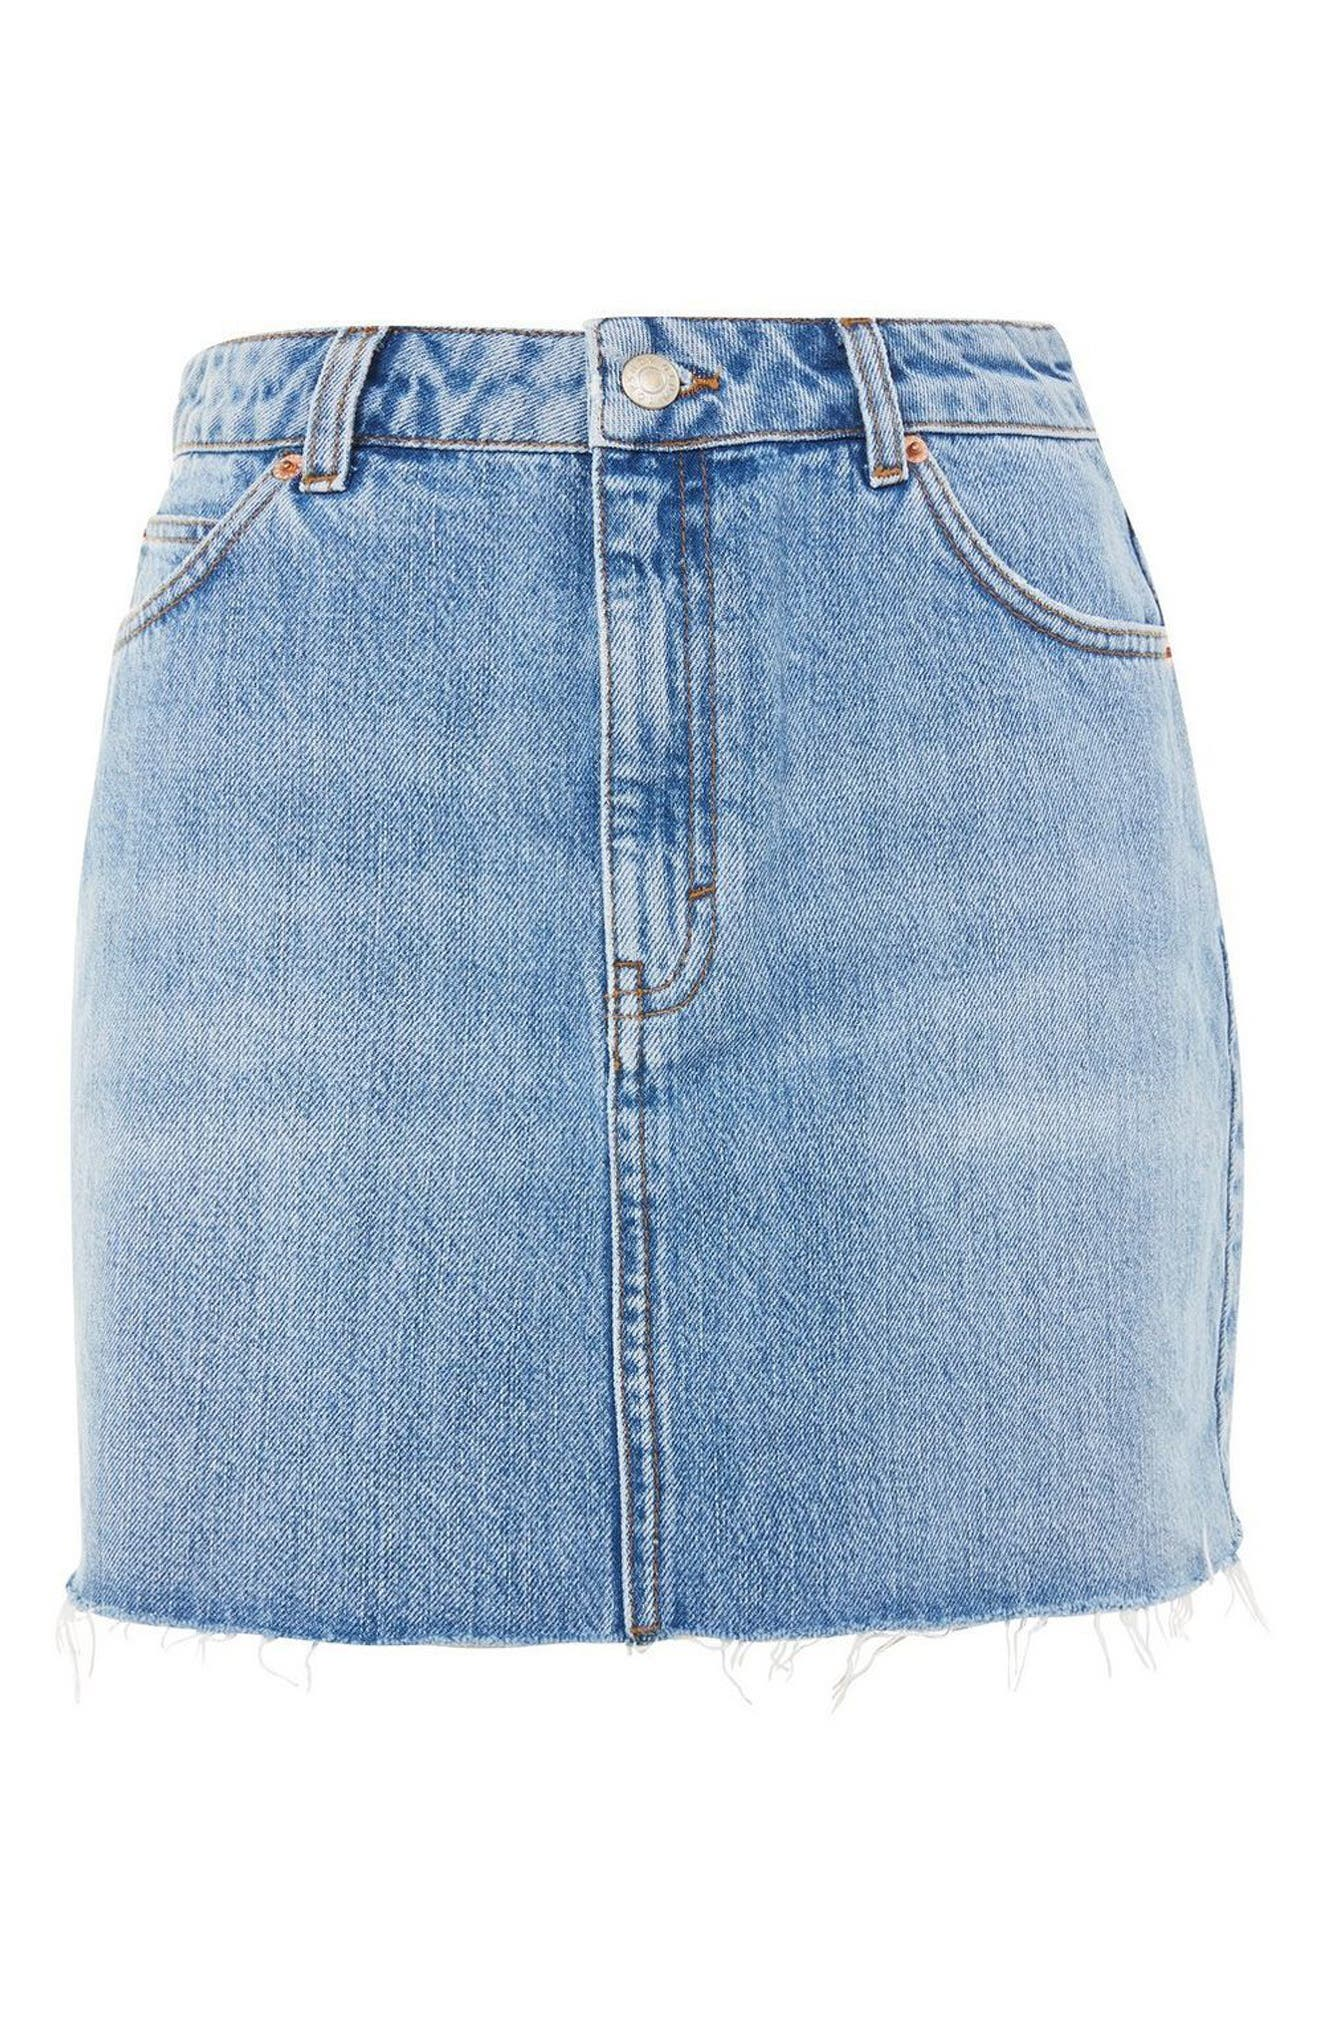 Denim Miniskirt,                             Alternate thumbnail 6, color,                             MID DENIM